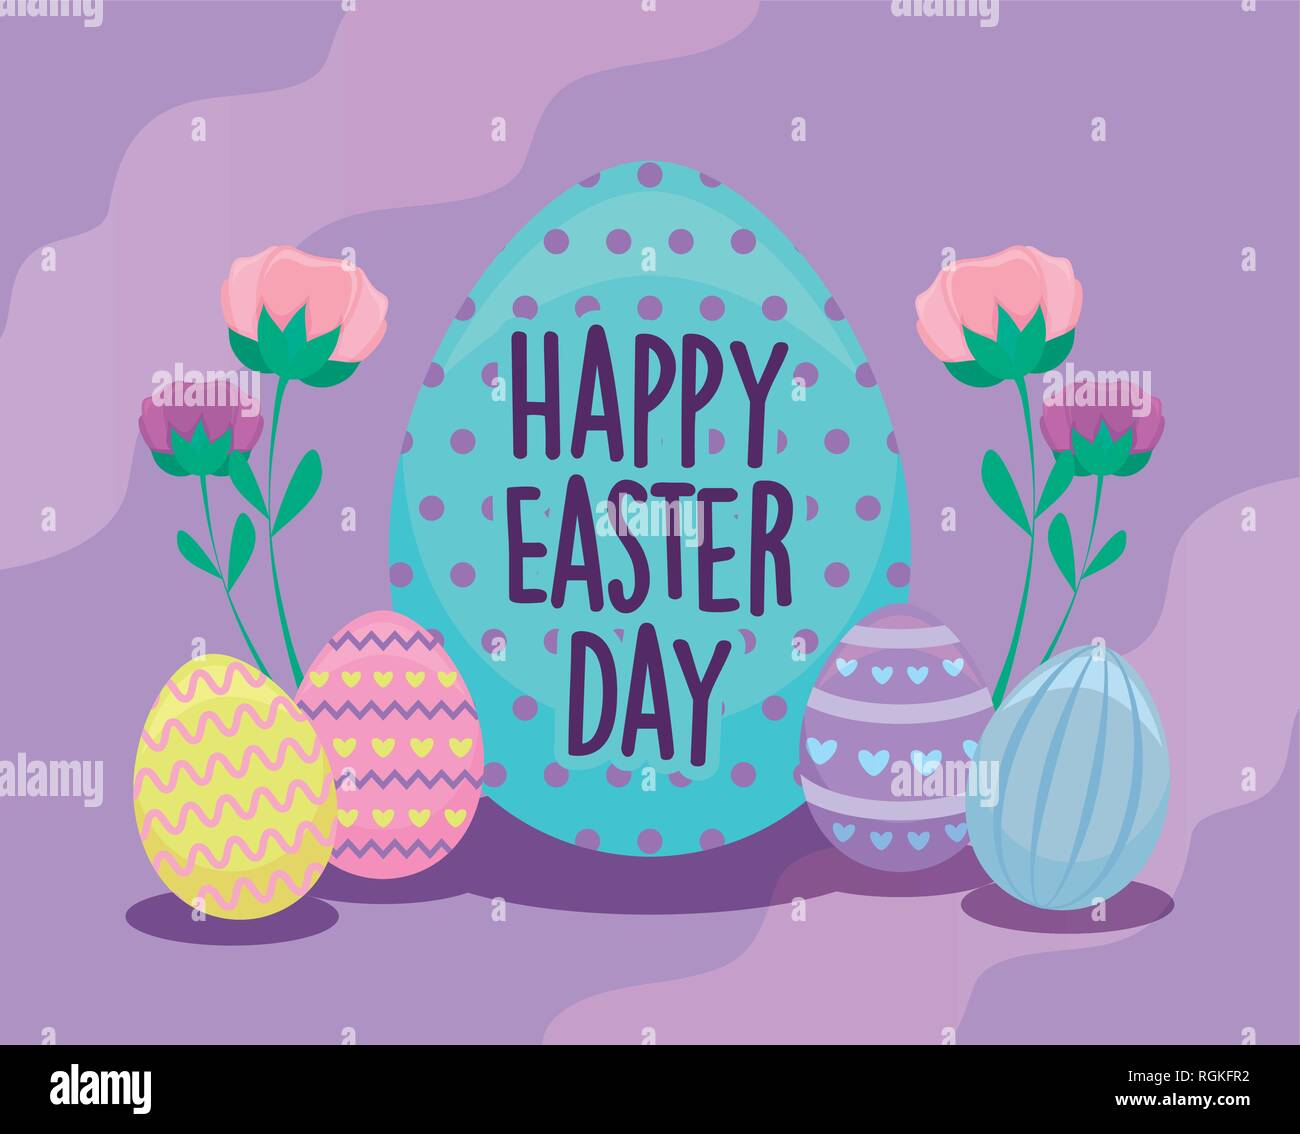 Happy Easter Day Card With Decorated Eggs Vector Illustration Design Stock Vector Image Art Alamy